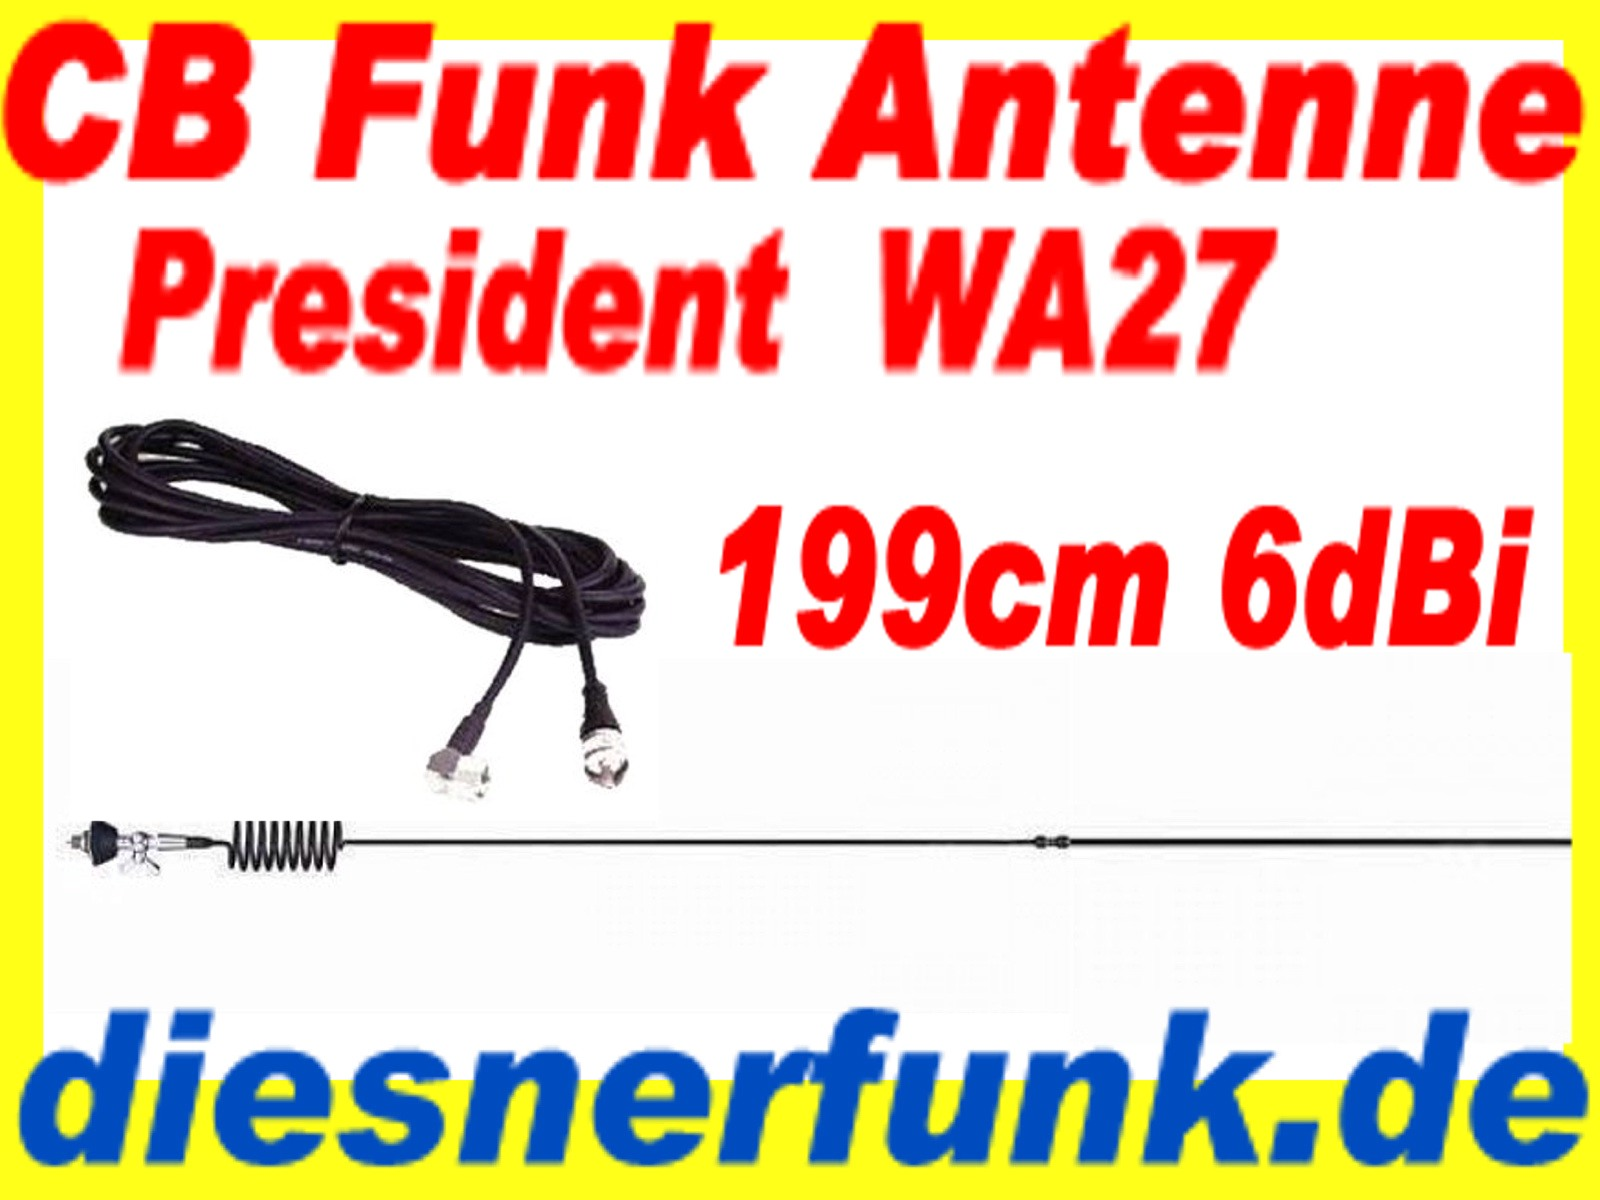 cb funk antenne president wa27 6dbi 199cm 1000watt offene spule f dx reichweite ebay. Black Bedroom Furniture Sets. Home Design Ideas